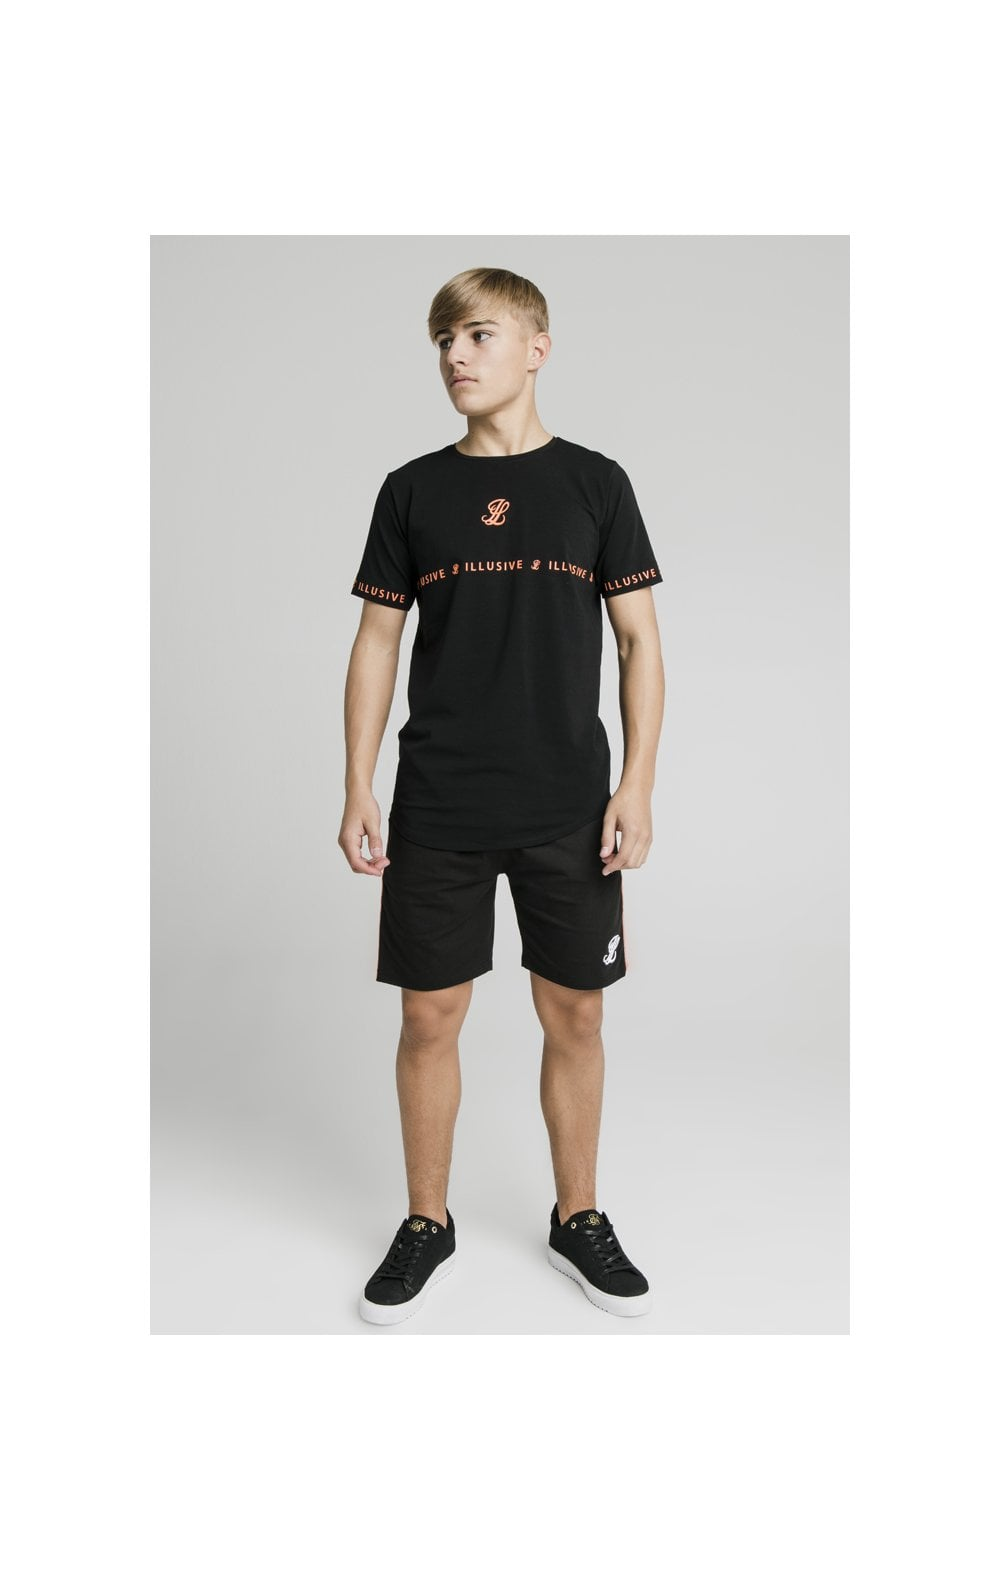 Illusive London Tape Tee - Black (5)